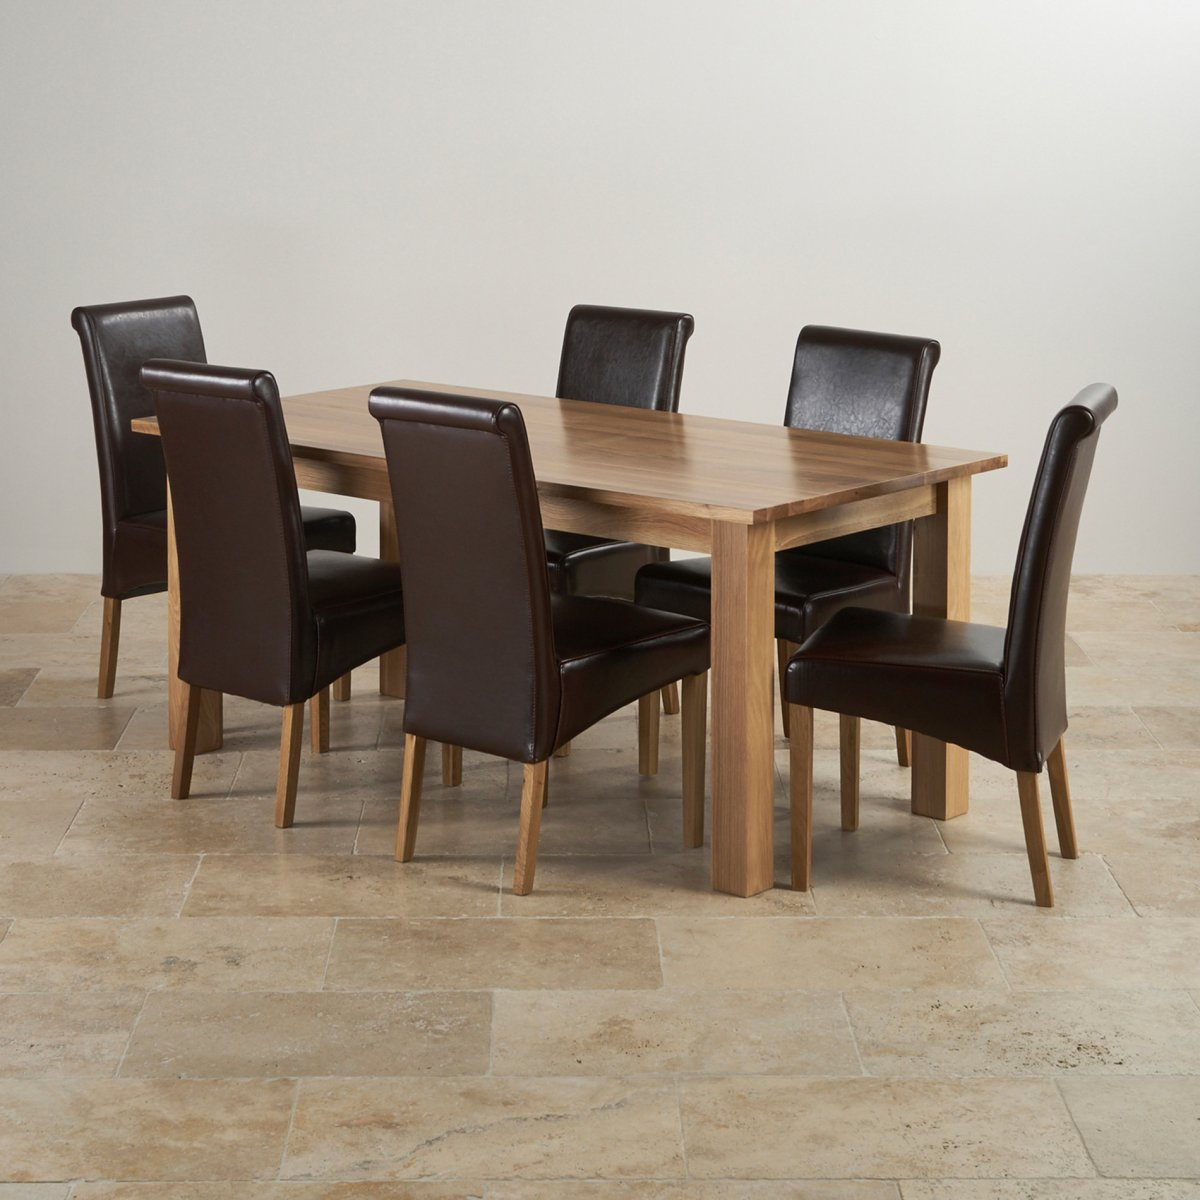 Dining Table Set Modern: Contemporary Dining Set In Natural Oak